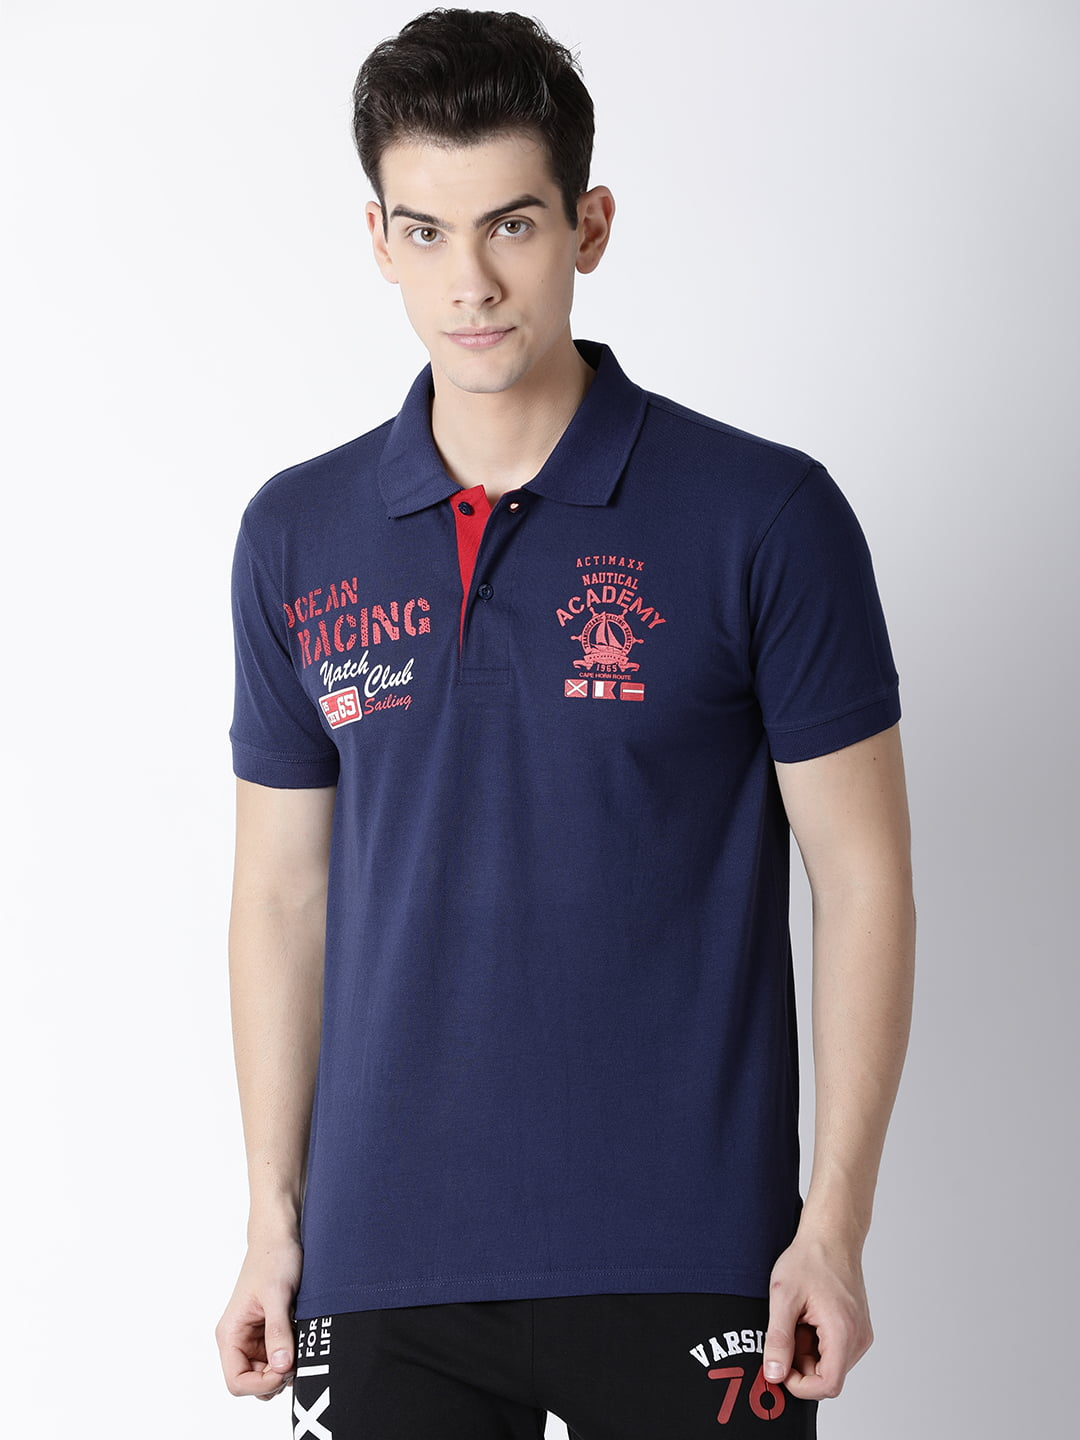 Polo T Shirts For Men - Carlos Fashion Polo - Front - Navy Blue